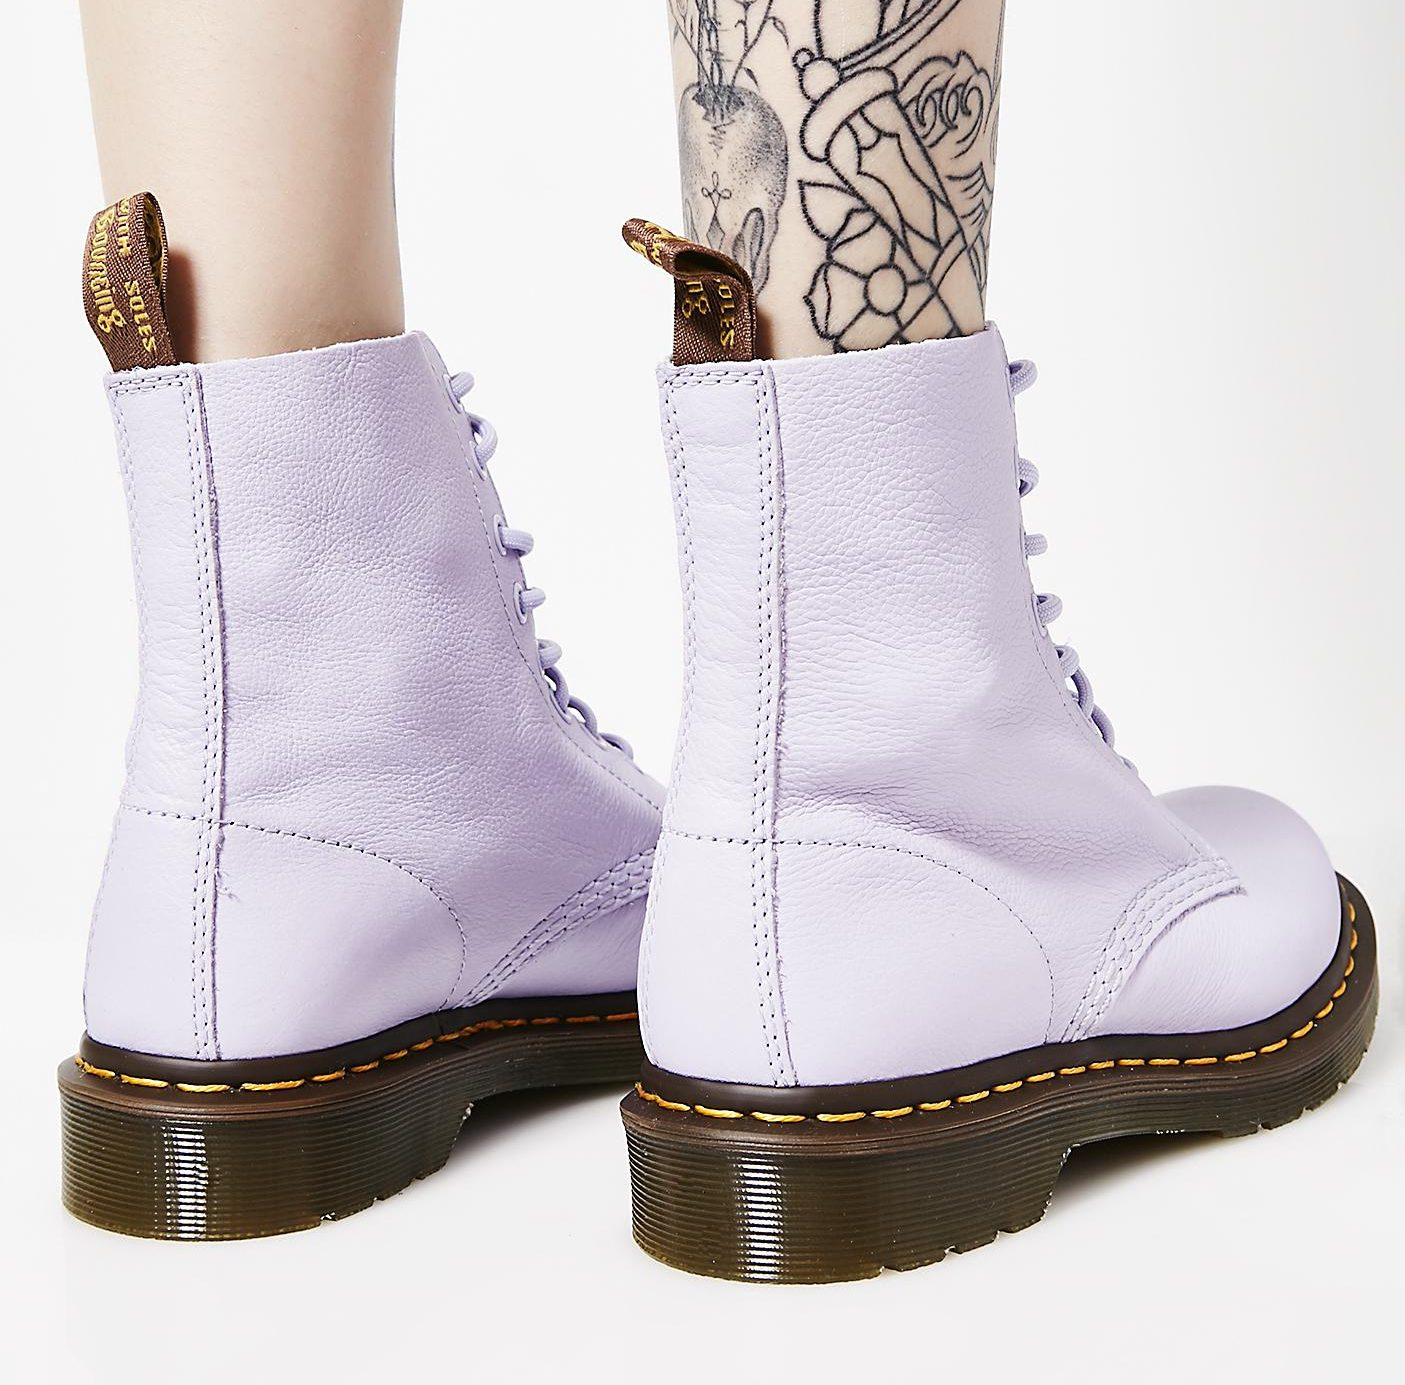 38979a52b2f Dr. Martens Light Purple Boots